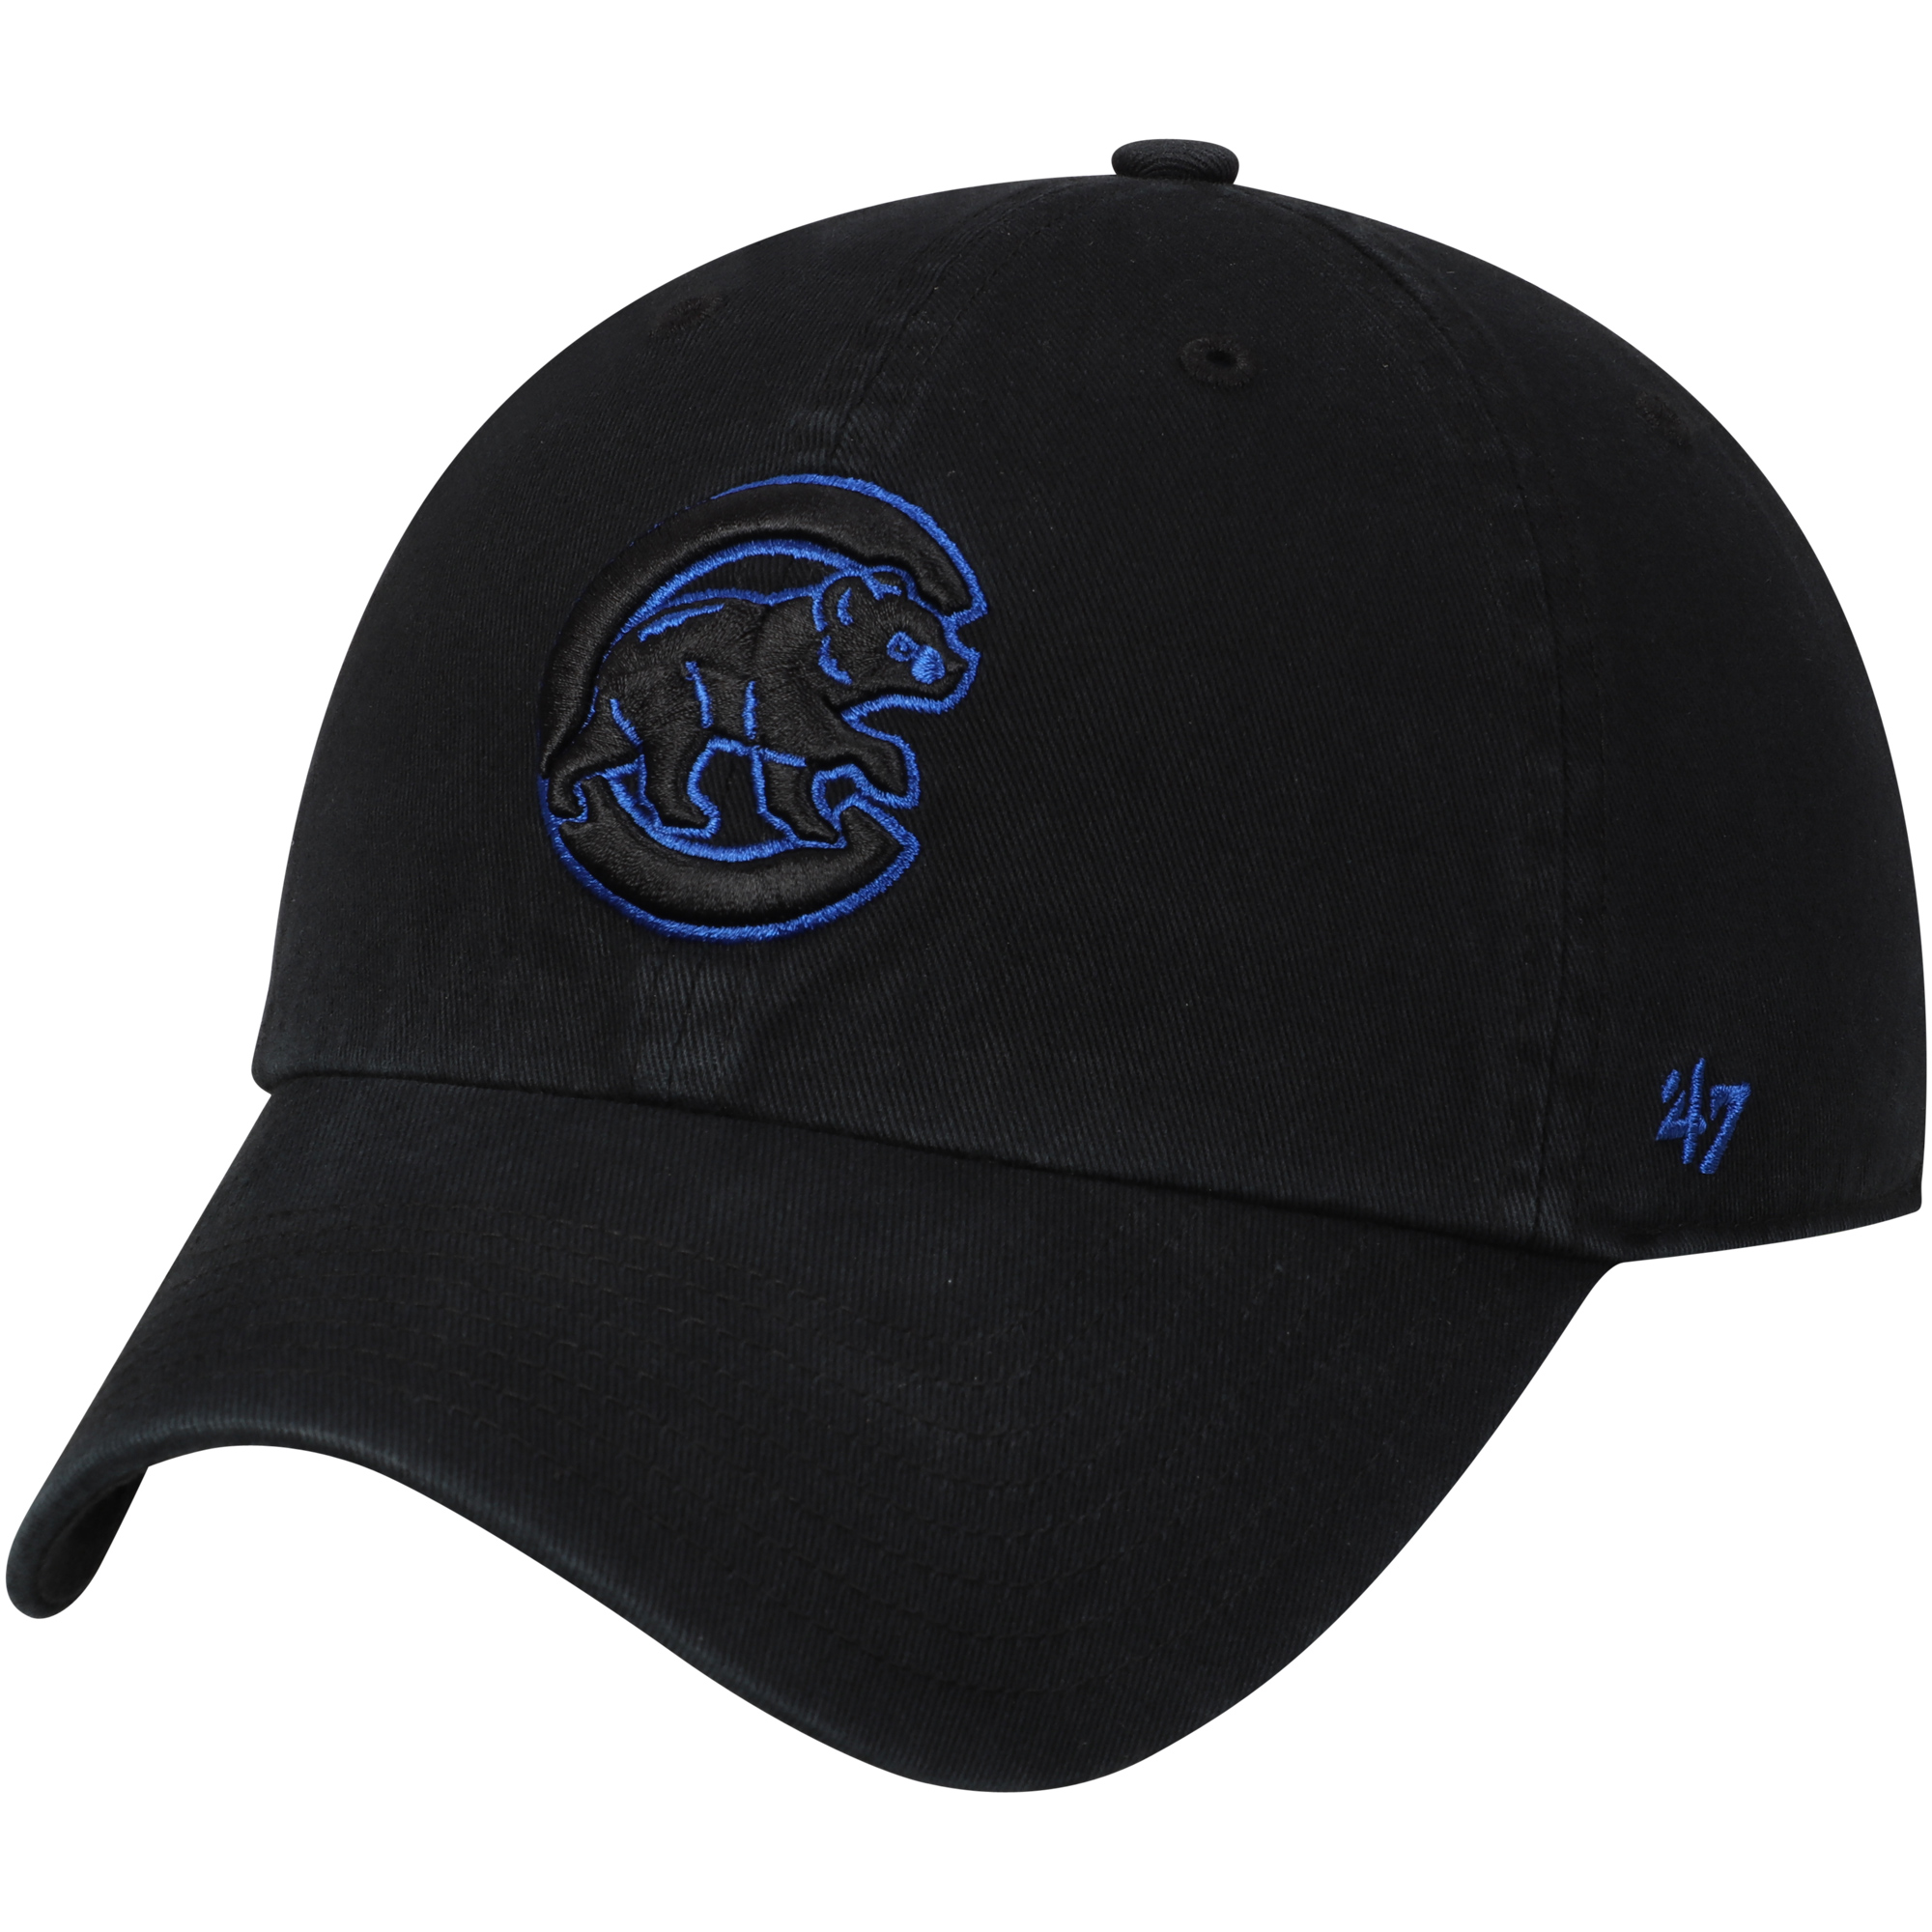 Chicago Cubs '47 Team Color Clean Up Adjustable Hat - Black - OSFA